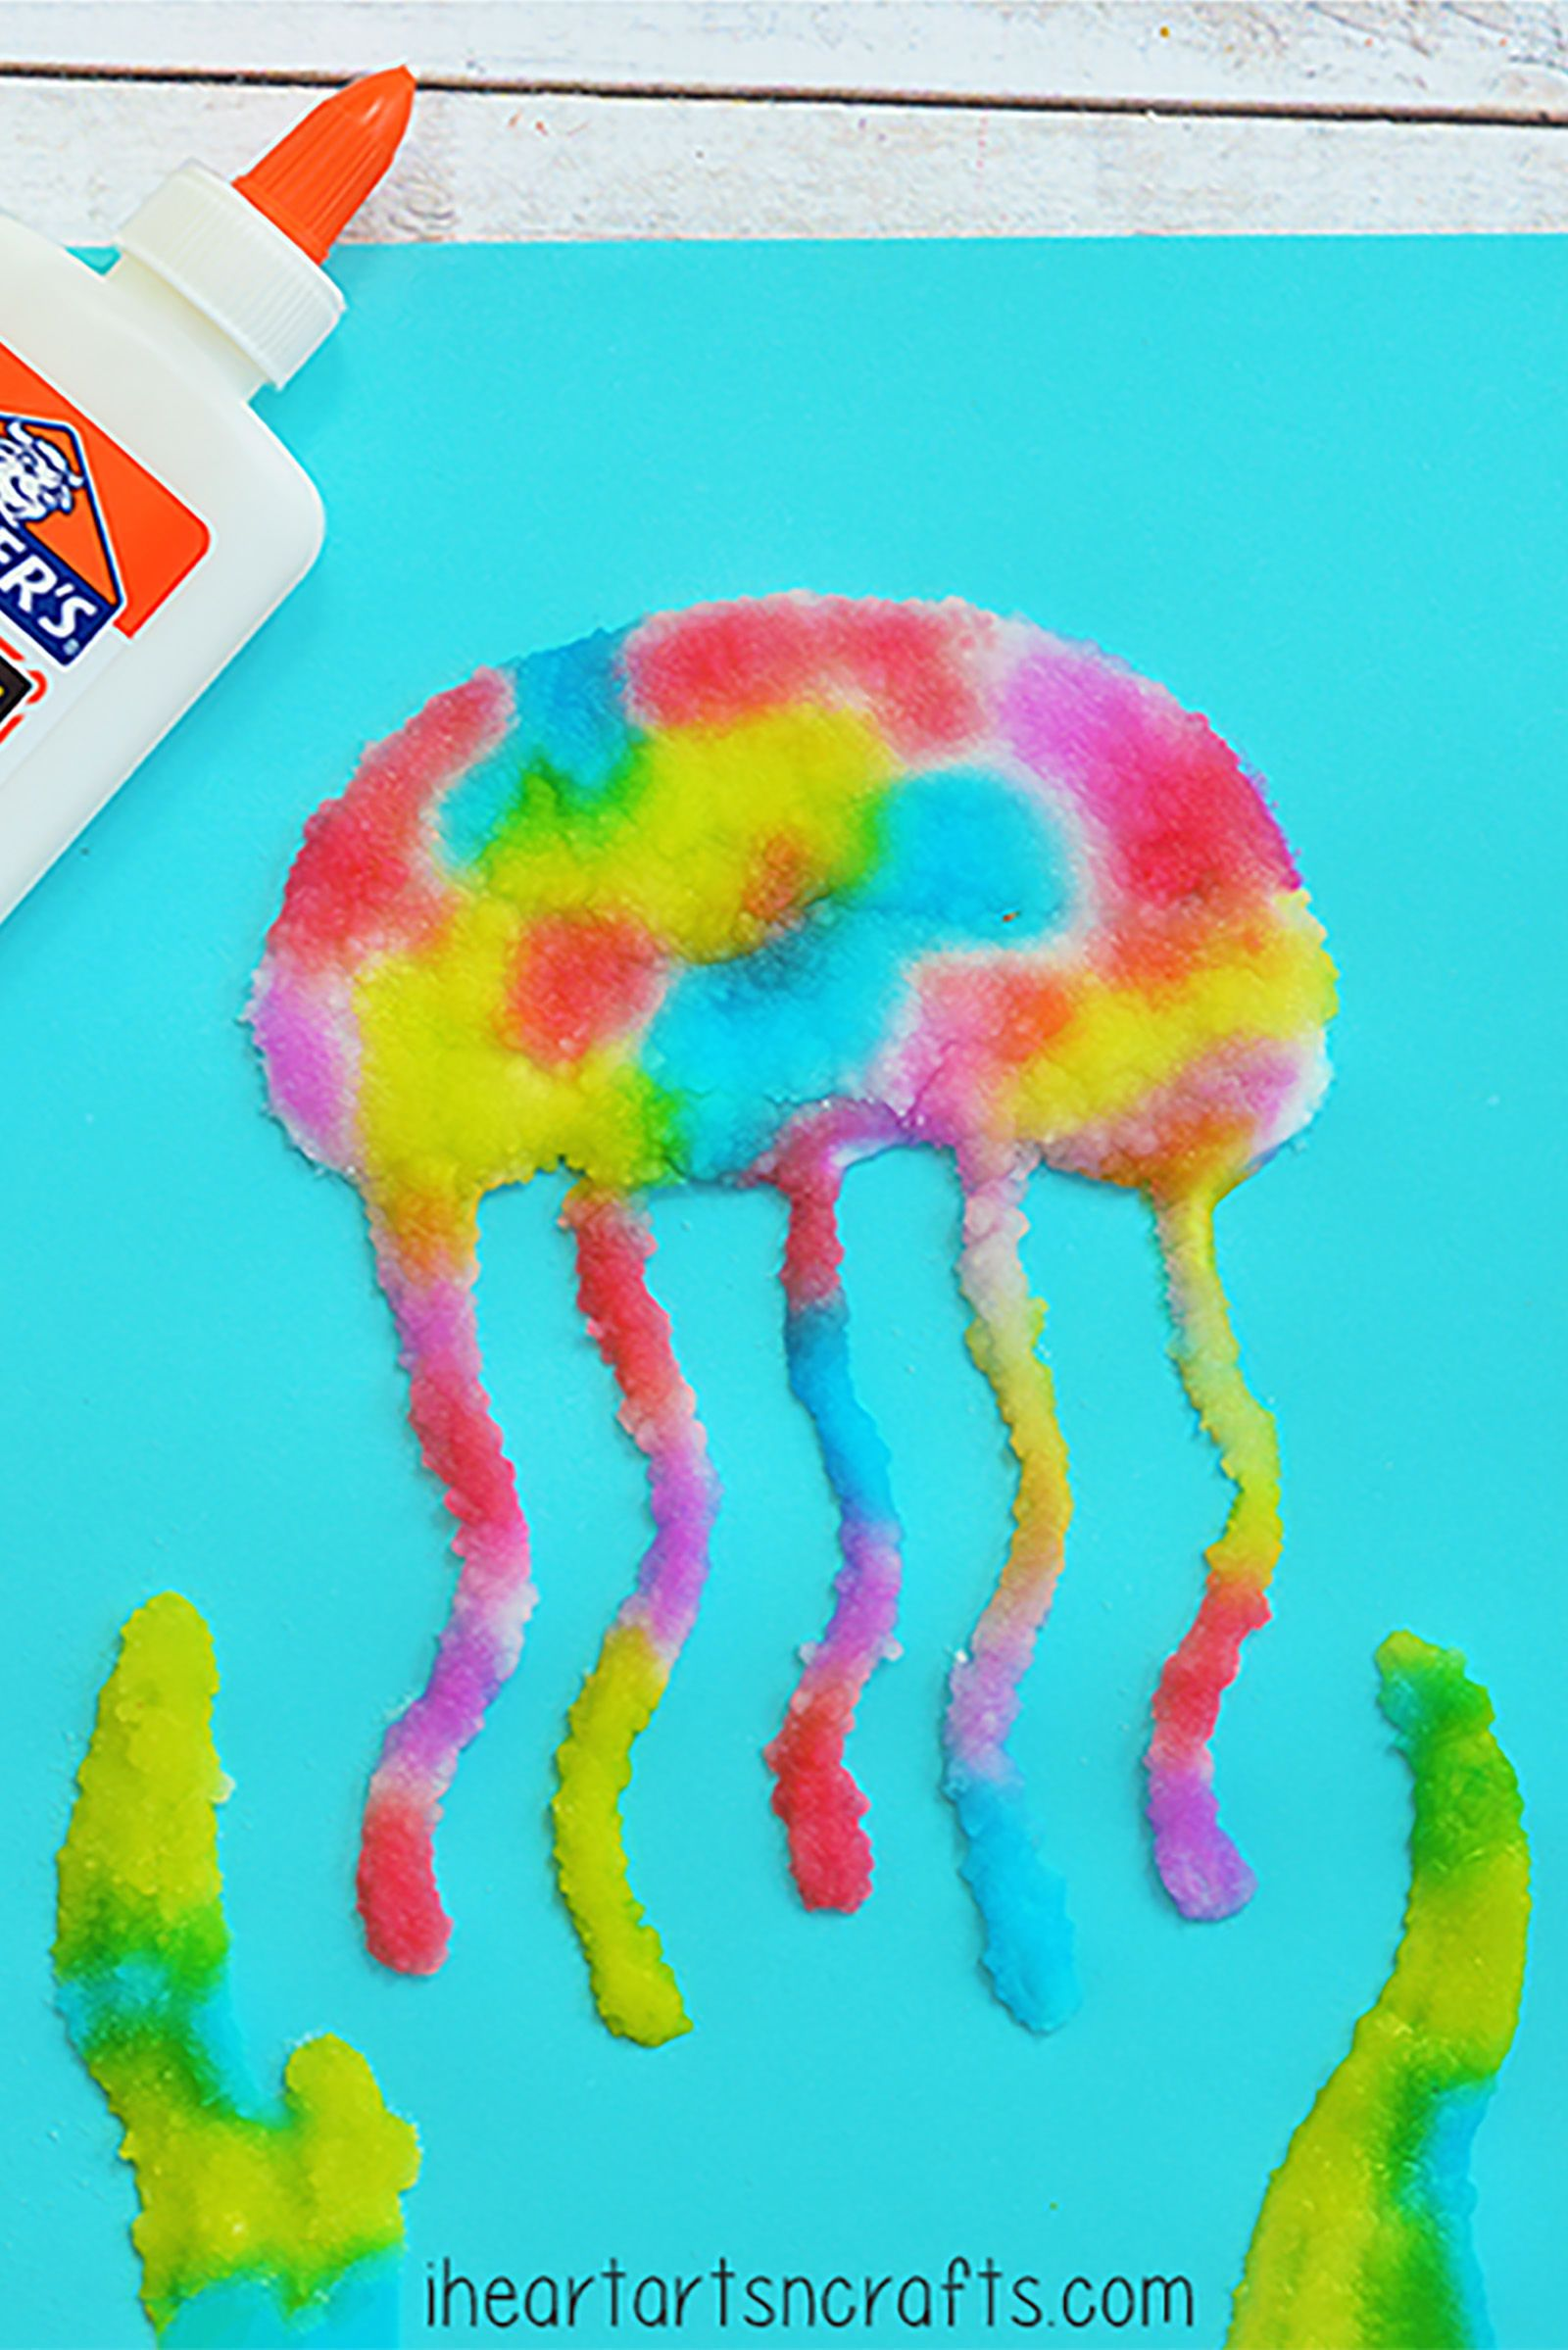 10 Easy Craft Ideas For Kids Fun Diy Craft Projects For Kids To Make